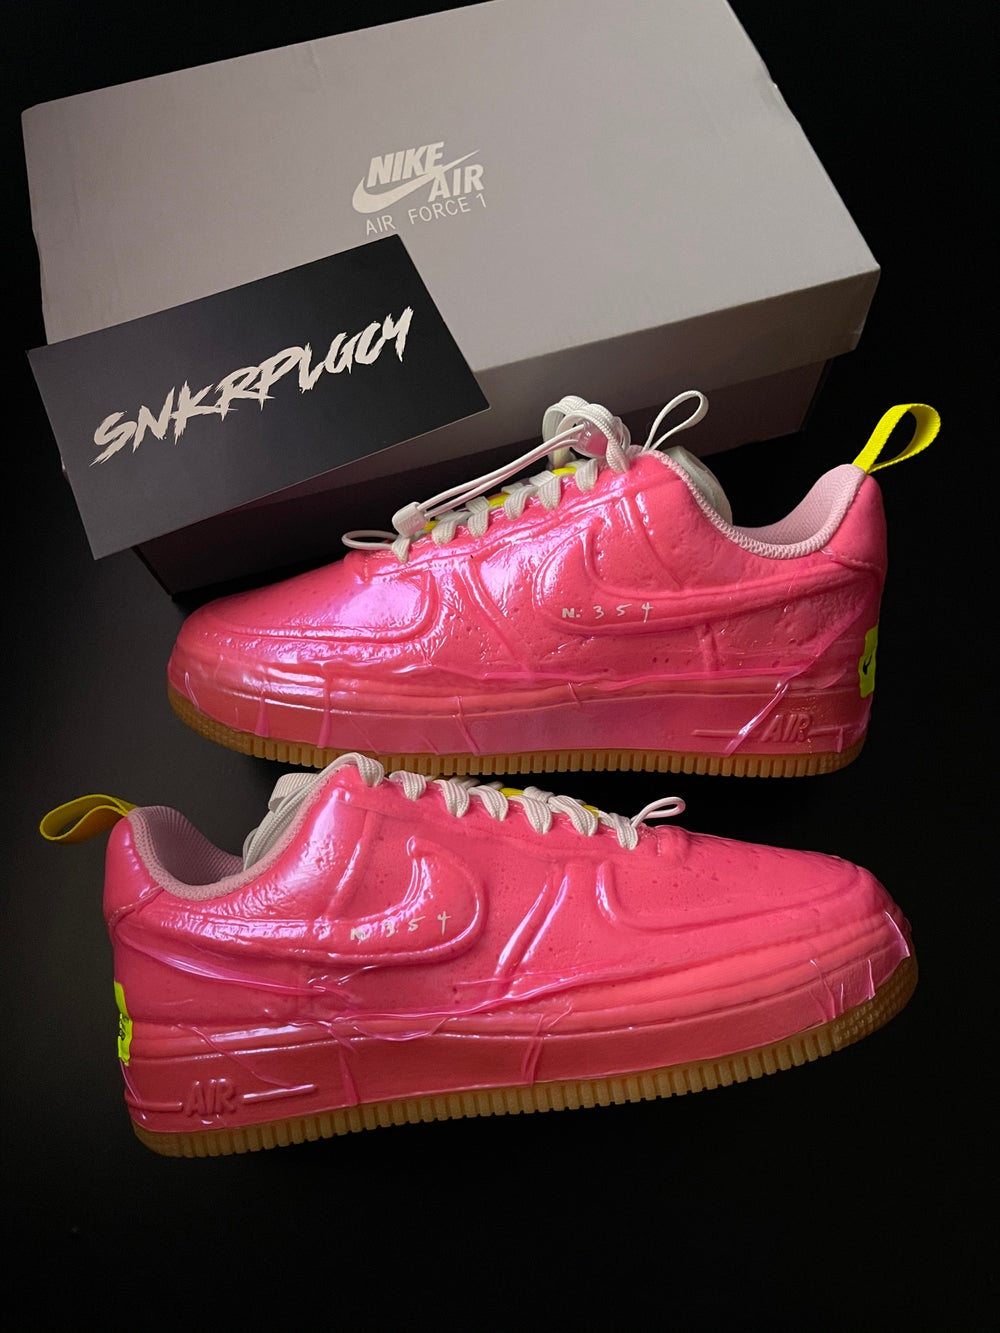 Nike Air Force 1 Experimental / Racer Pink